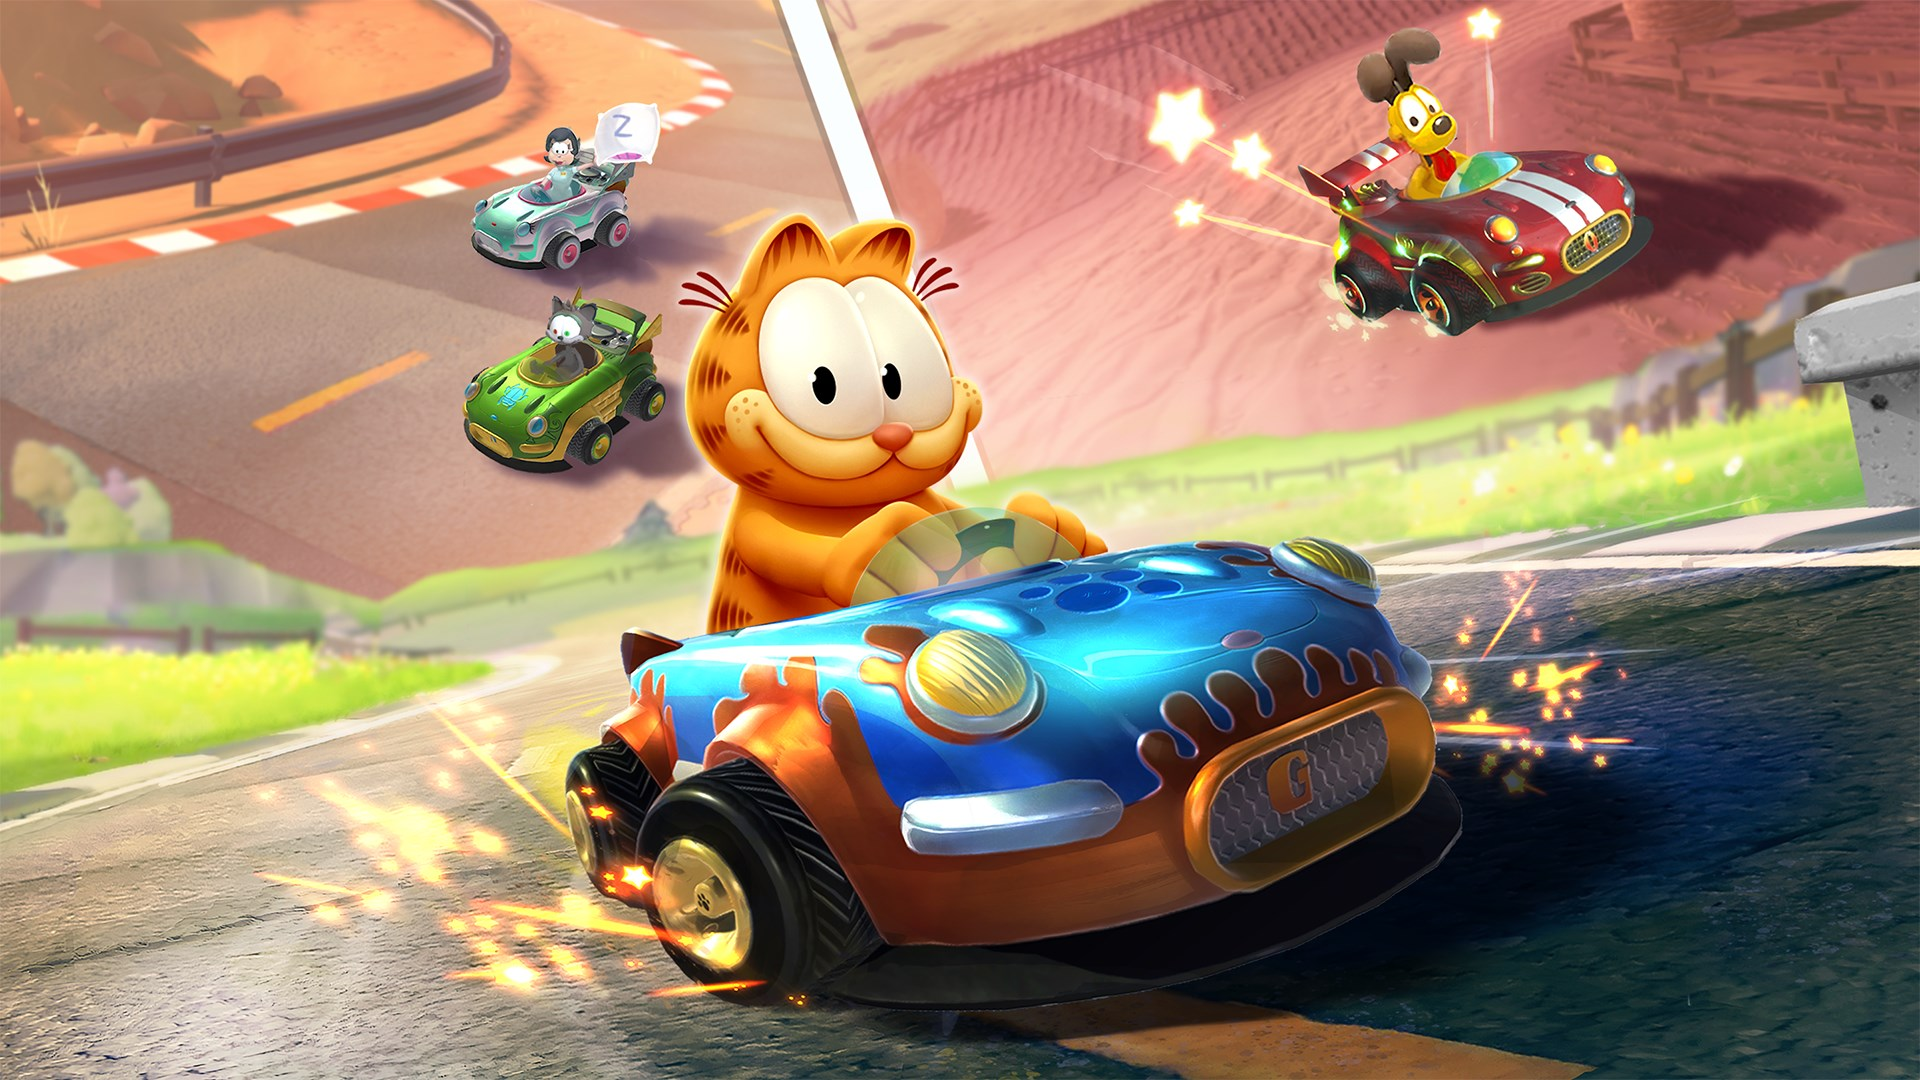 Reunite With Garfield And Friends In Garfield Kart Furious Racing On Xbox One Thexboxhub